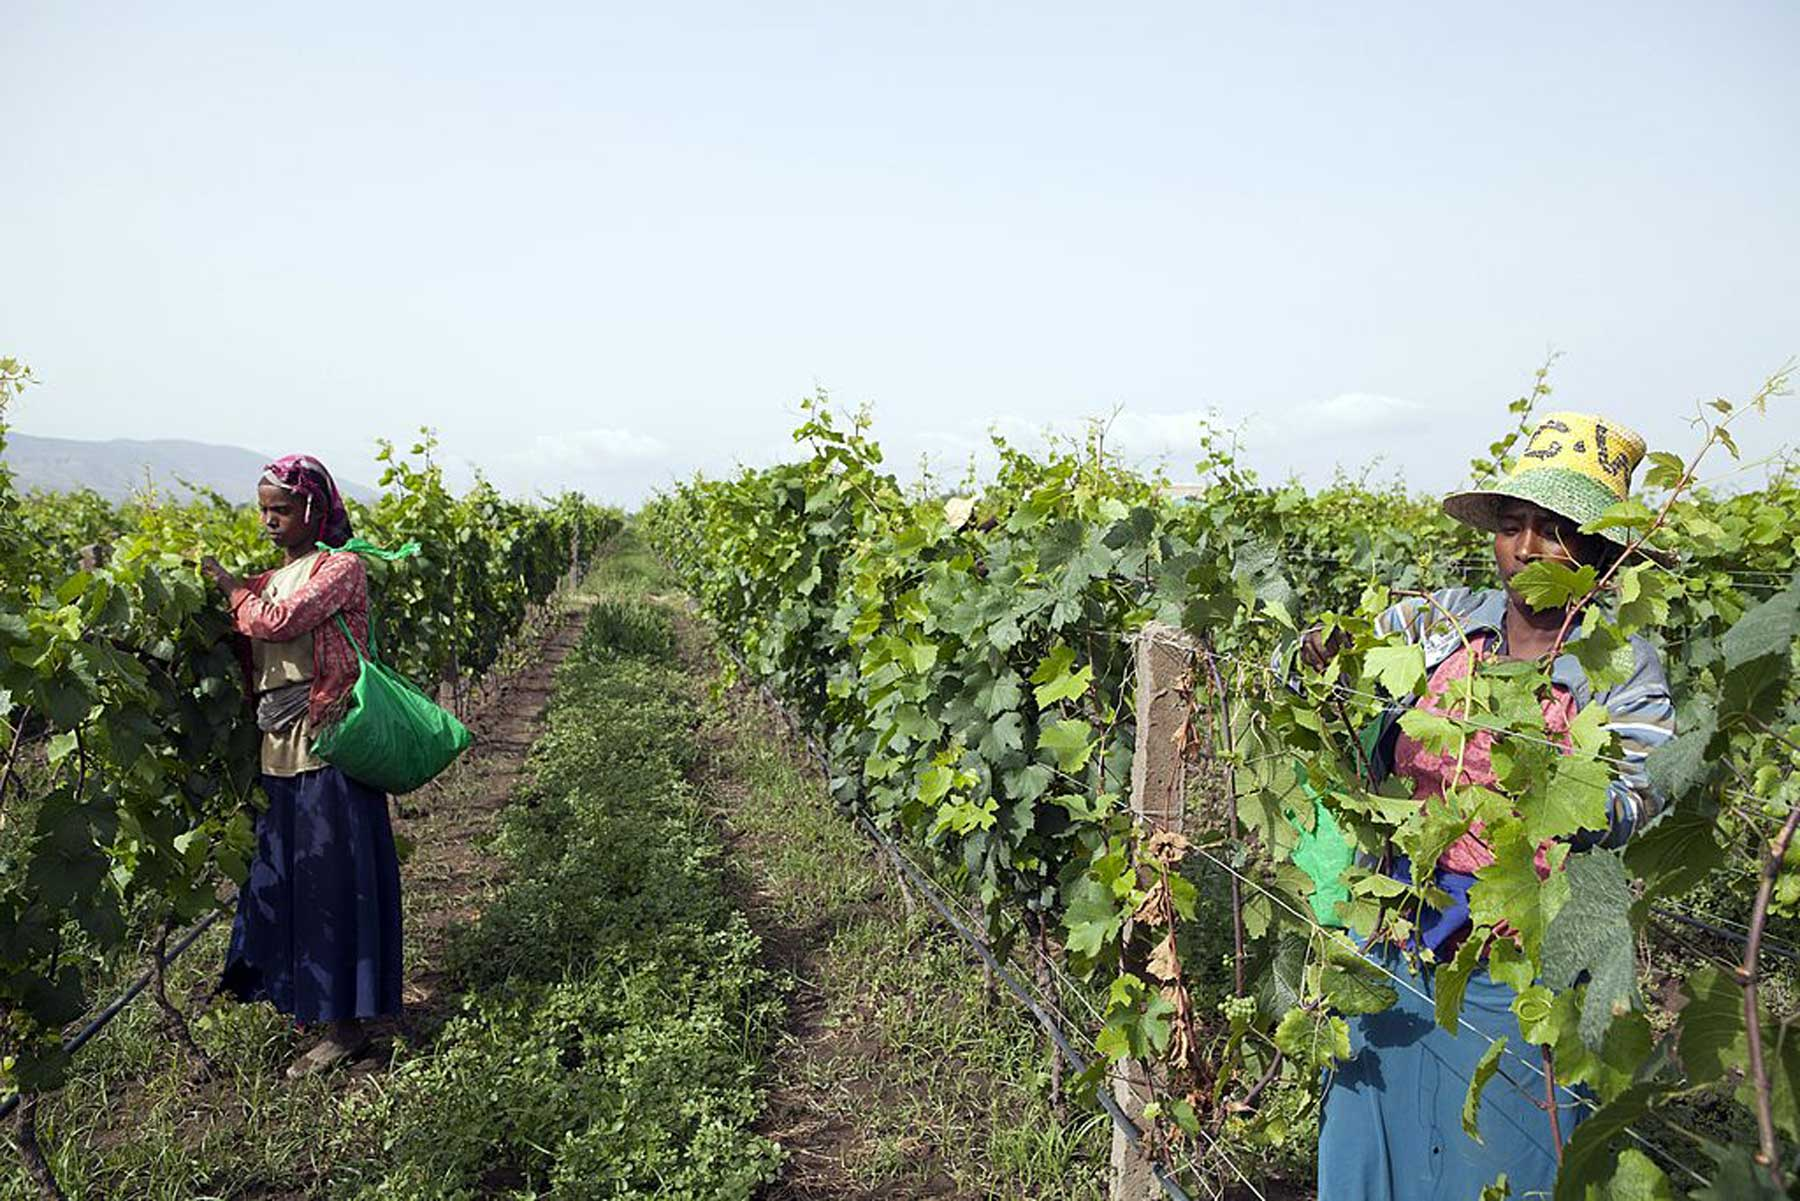 Women pick grapes at the vineyard of the Castel winery outside the town of Ziway, central Ethiopia, on June 12, 2014. Beyond the donkeys on a potholed road in southern Ethiopia, is an unexpected sight -- vineyards bursting with merlot, syrah and chardonnay grapes ripening in the African sun.